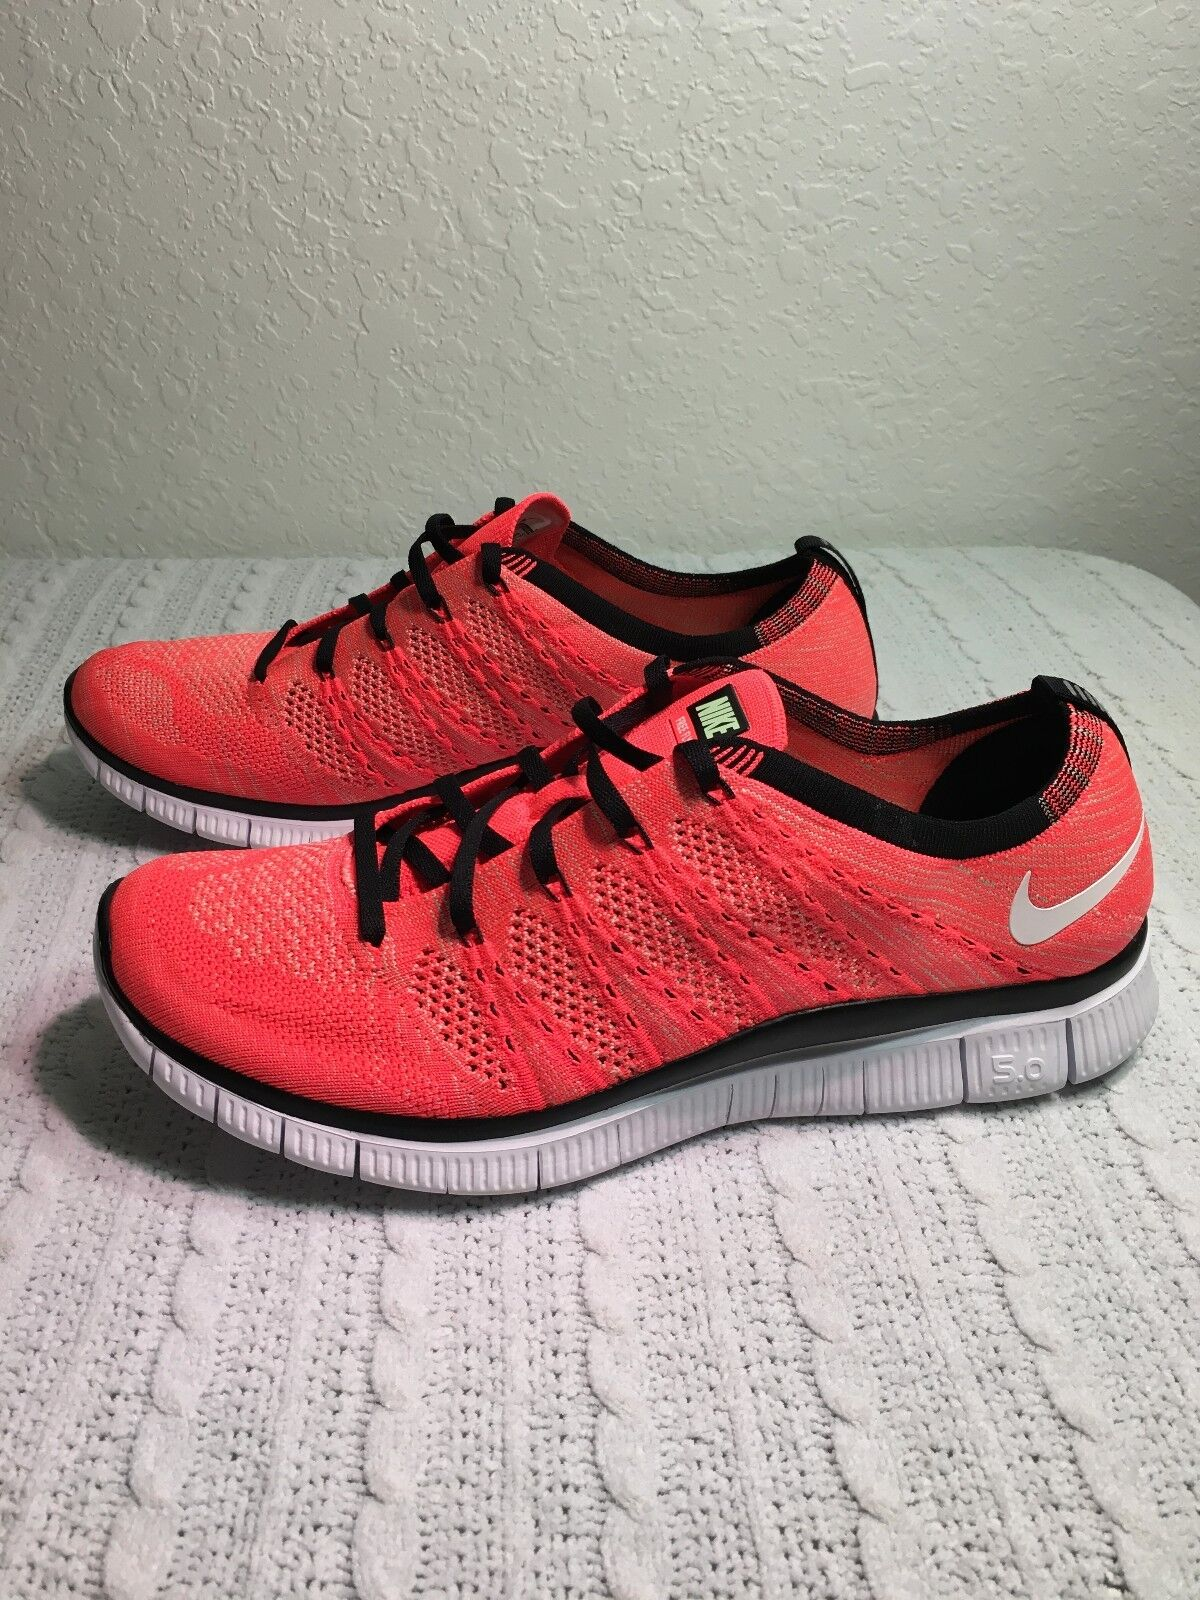 NIKE FREE FLYKNIT NSW HOT LAVA/WHITE/GREEN/BLCK MEN SIZE 9.5 NEW 599459 800